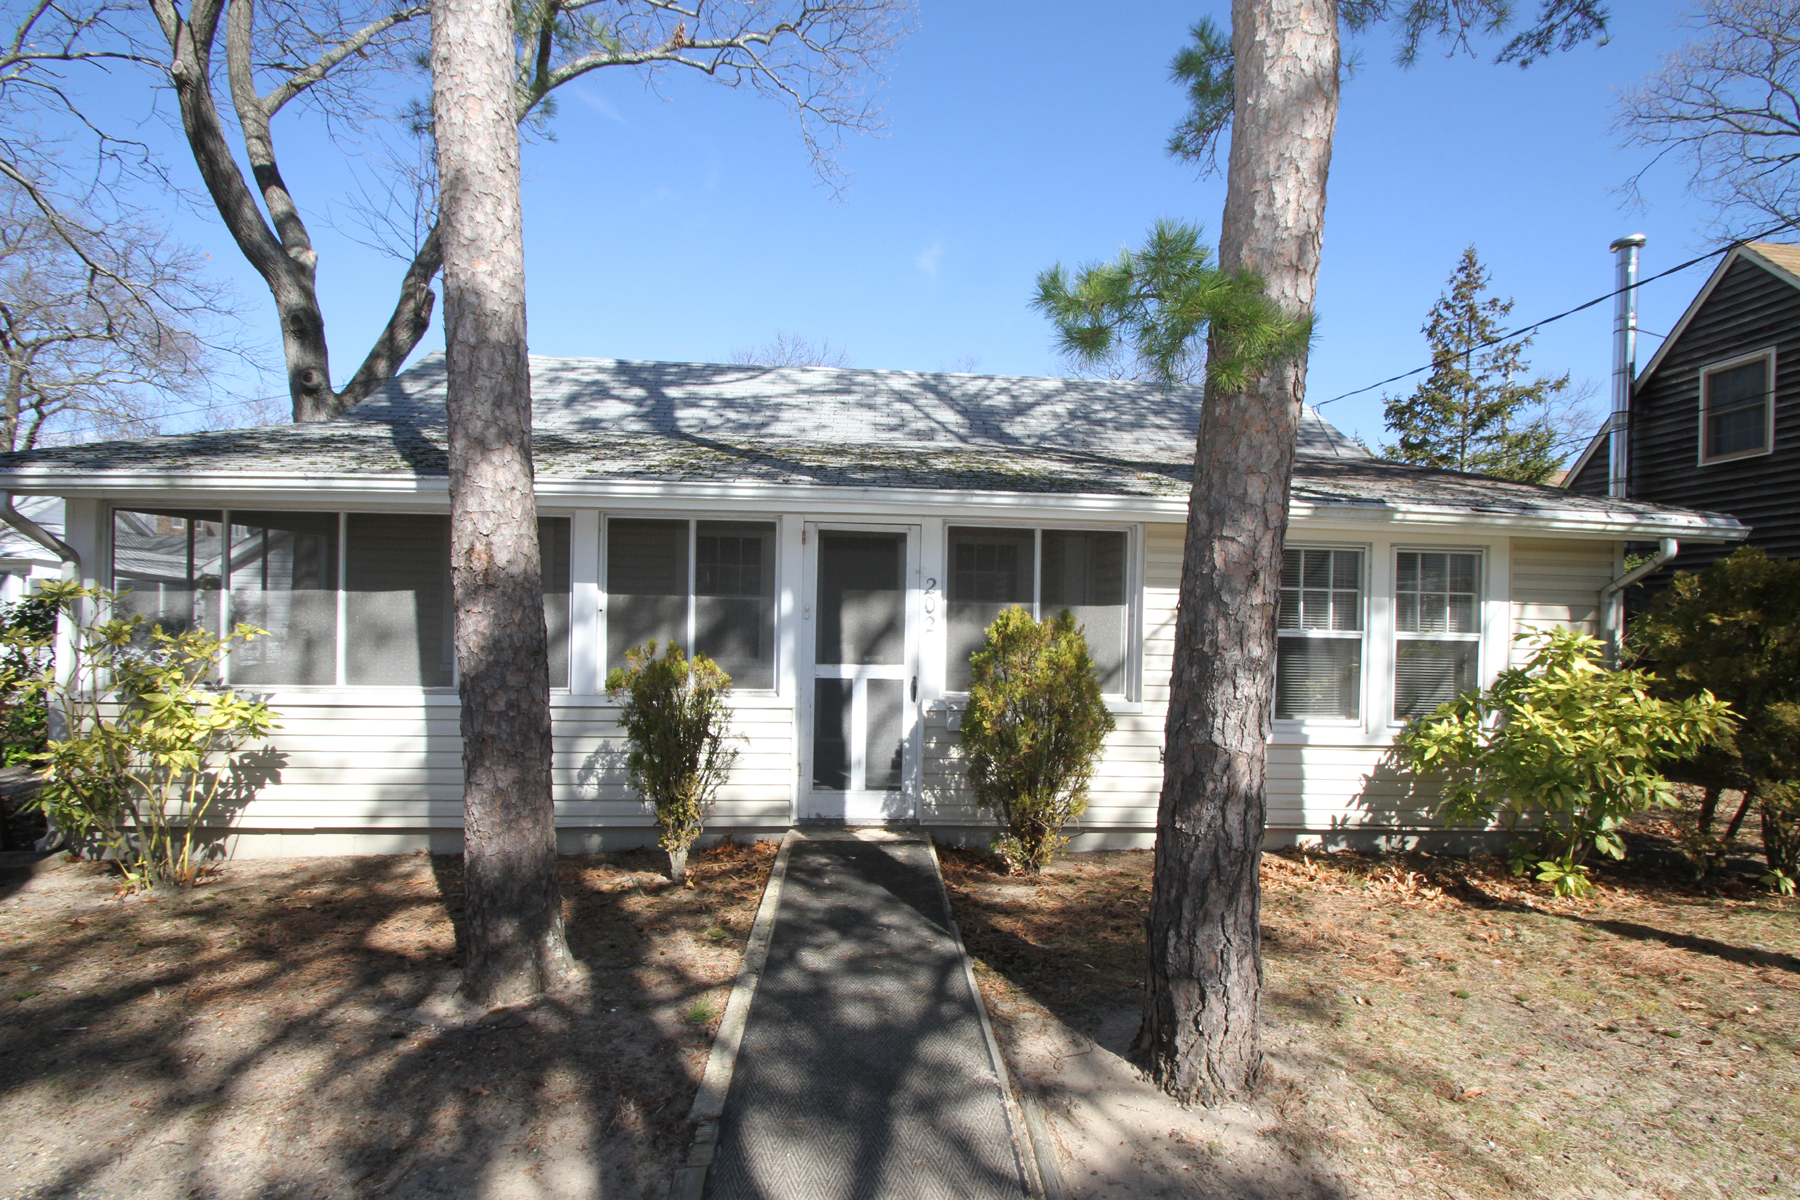 Single Family Home for Sale at Unique Over-sized Property Just Steps From Riverfront Park 202 Osborn Avenue B Point Pleasant, New Jersey 08742 United States